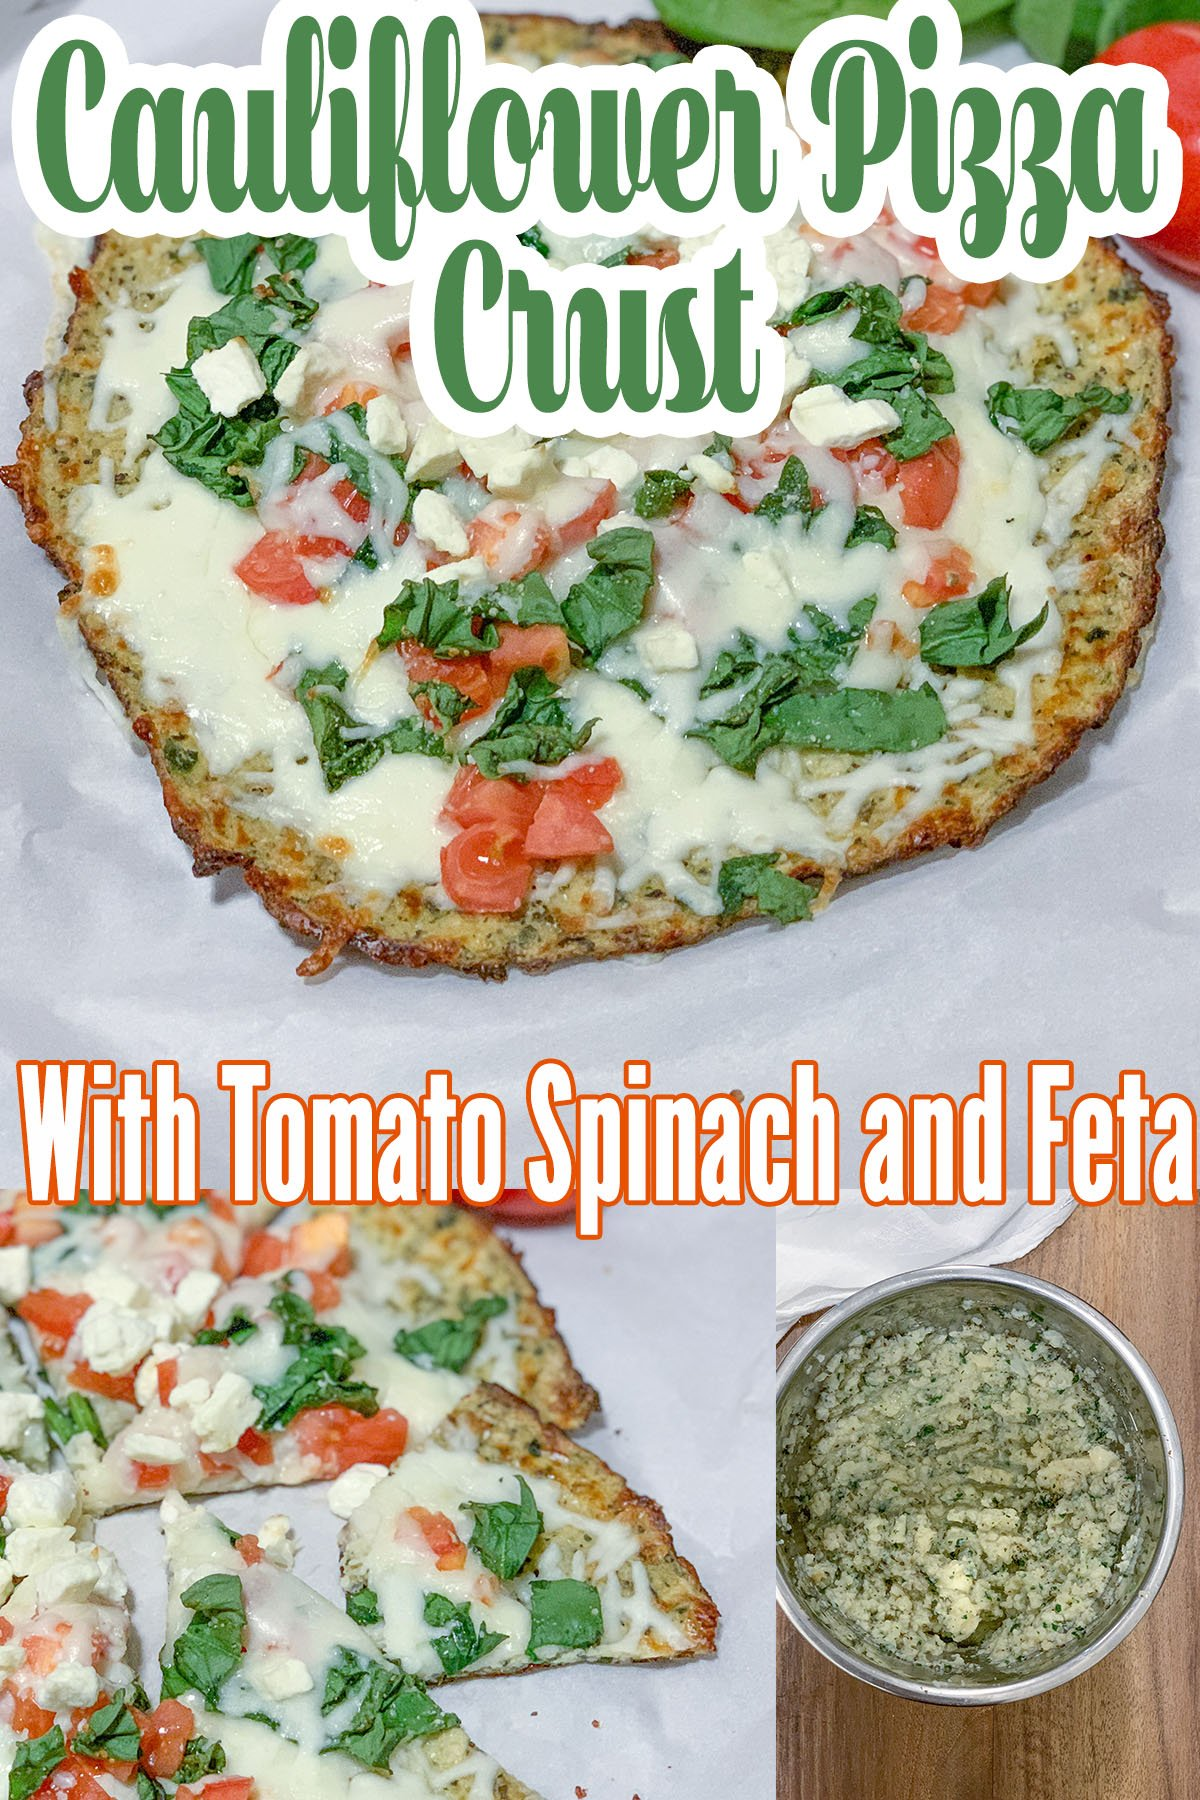 This cauliflower pizza crust is the best and you can top it with your favorite pizza ingredients for the tastiest low carb lunch or dinner option! #easy #recipe #low #carb #lowcarb #keto # healthy #vegan #vegetarian #how #to #make